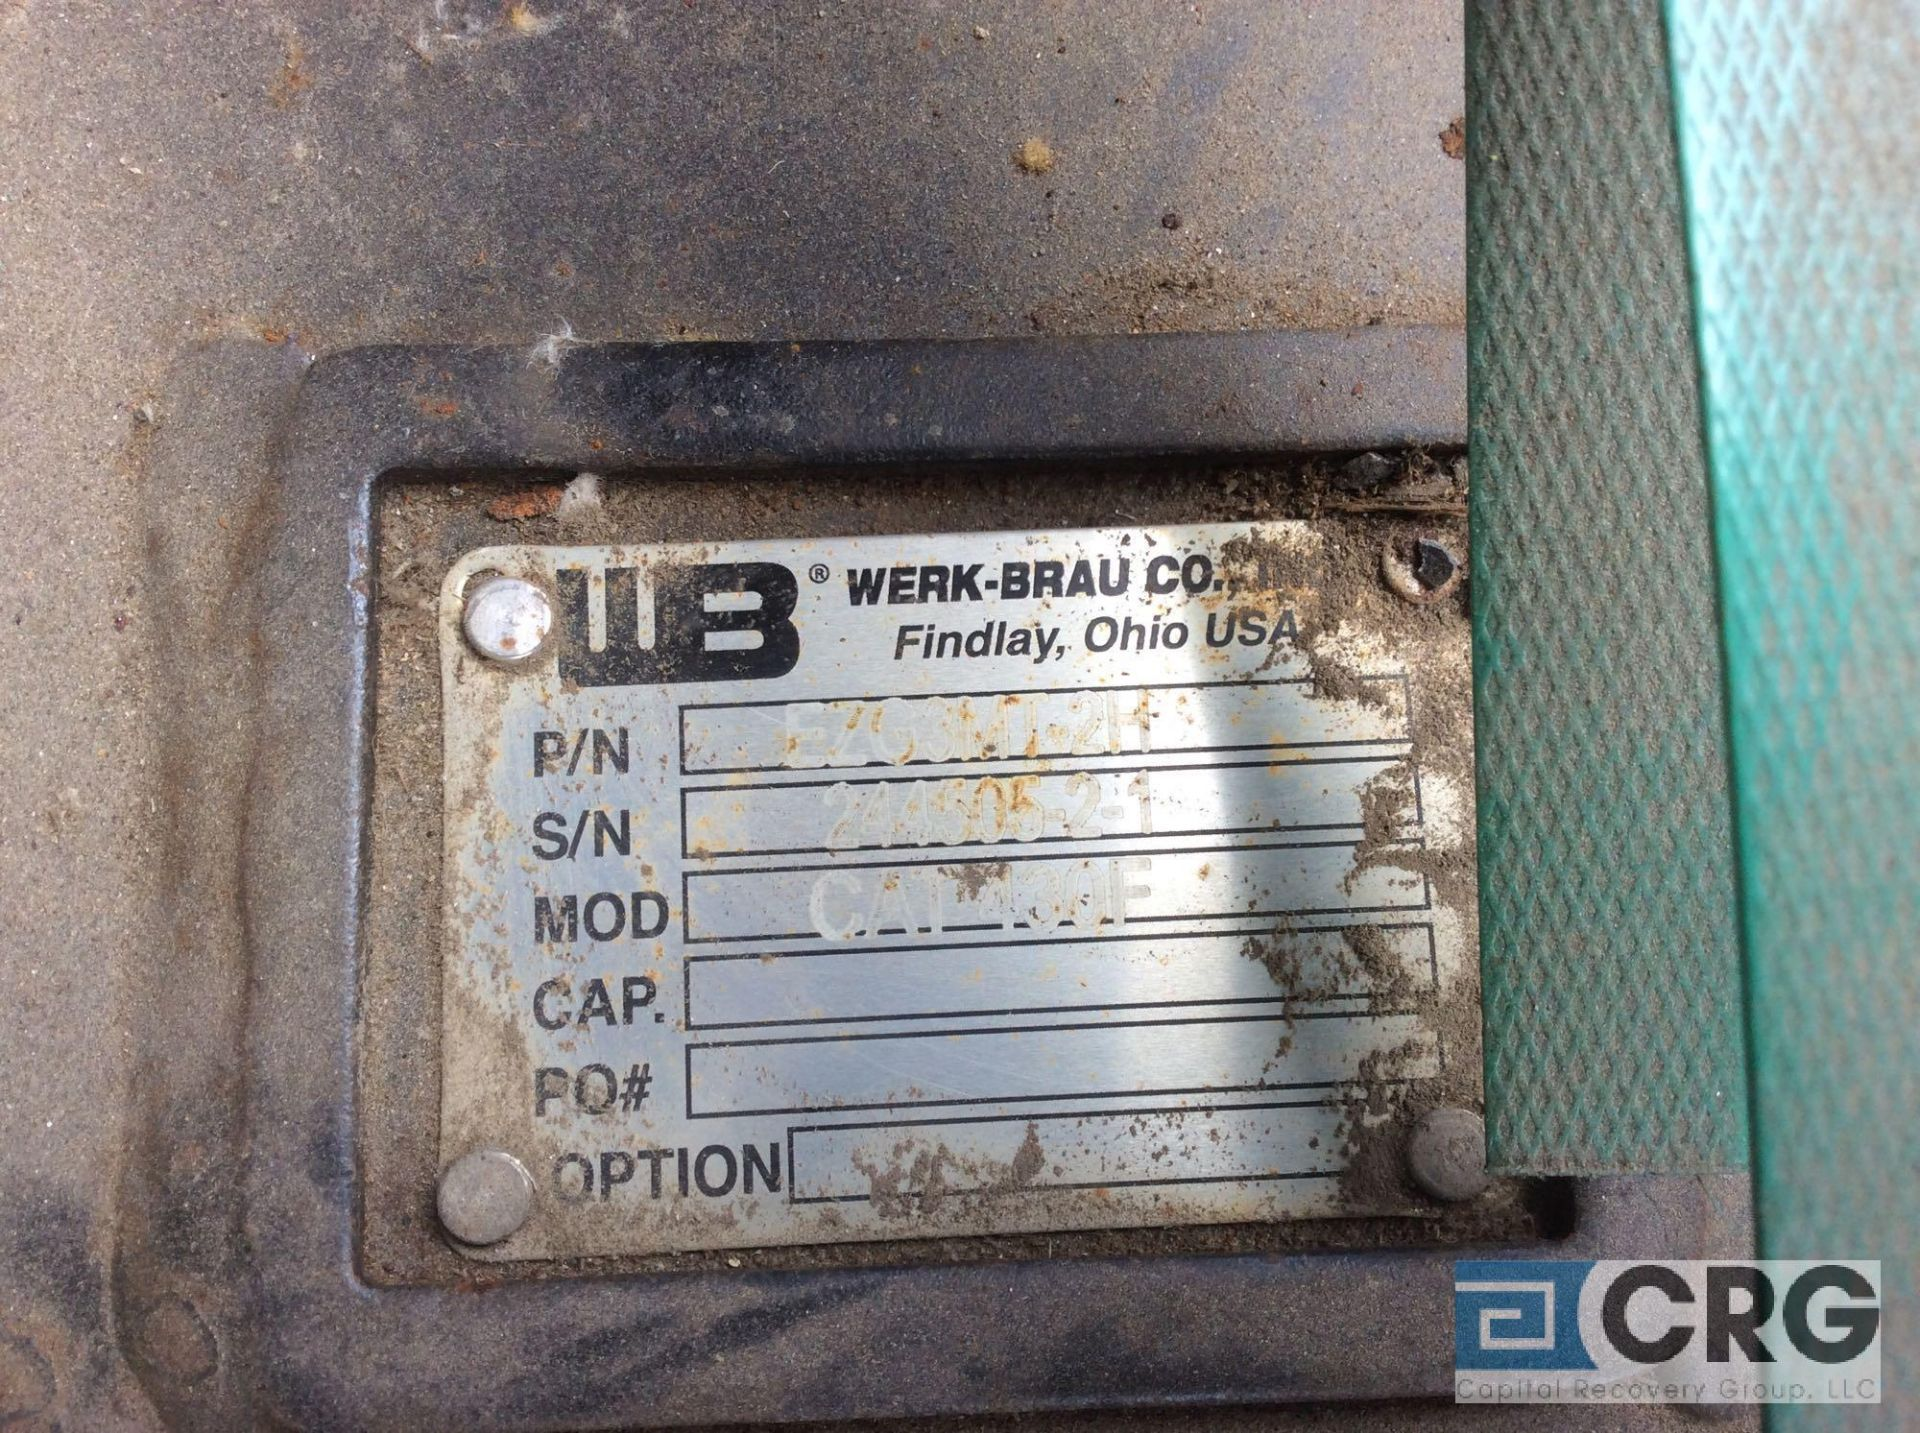 Lot 303A - Werk-Brau Co hydraulic thumb, NEW ON SKIDS NEVER INSTALLED, fits CAT 430 backhoe